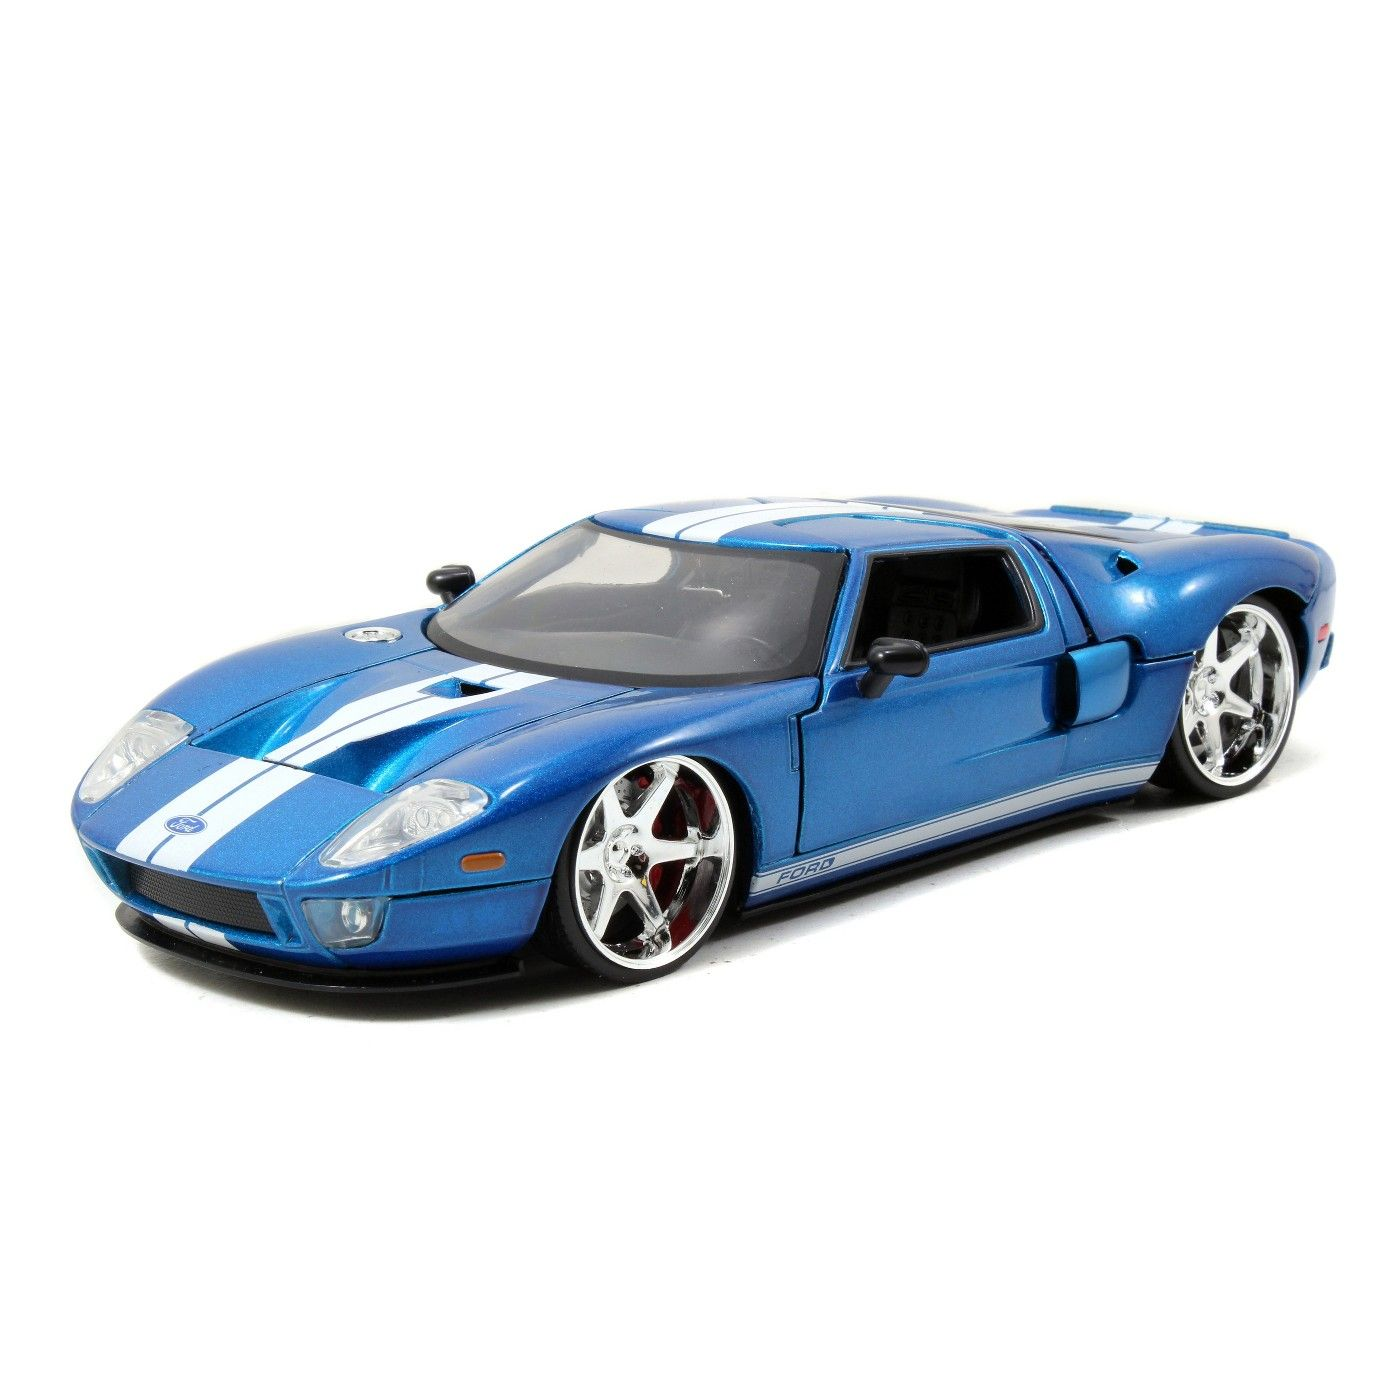 Jada Toys Fast Furious 2005 Ford Gt Die Cast Vehicle 1 24 Scale Metallic Blue In 2020 Ford Gt Diecast Cars Ford Classic Cars